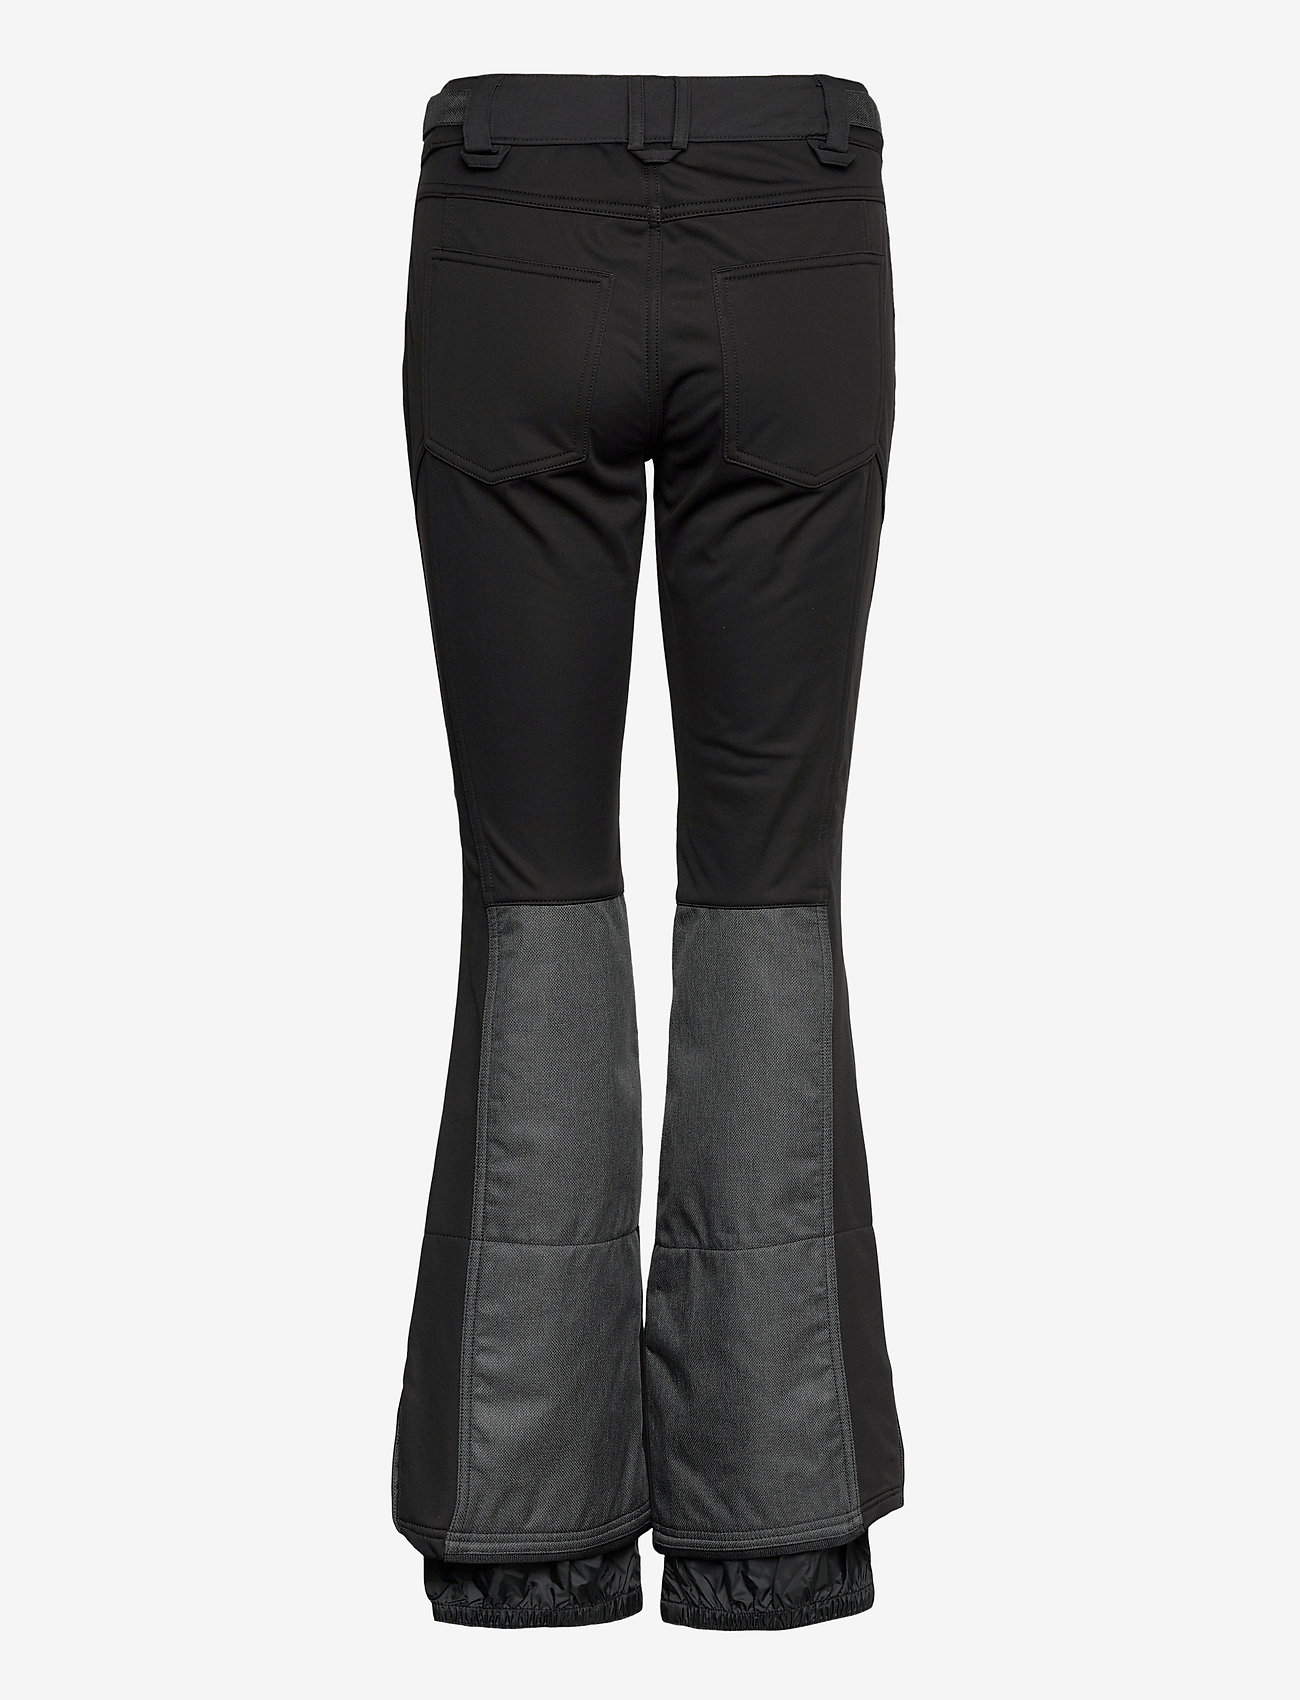 O'Neill - PW SPELL PANTS - skibukser - black out - 1